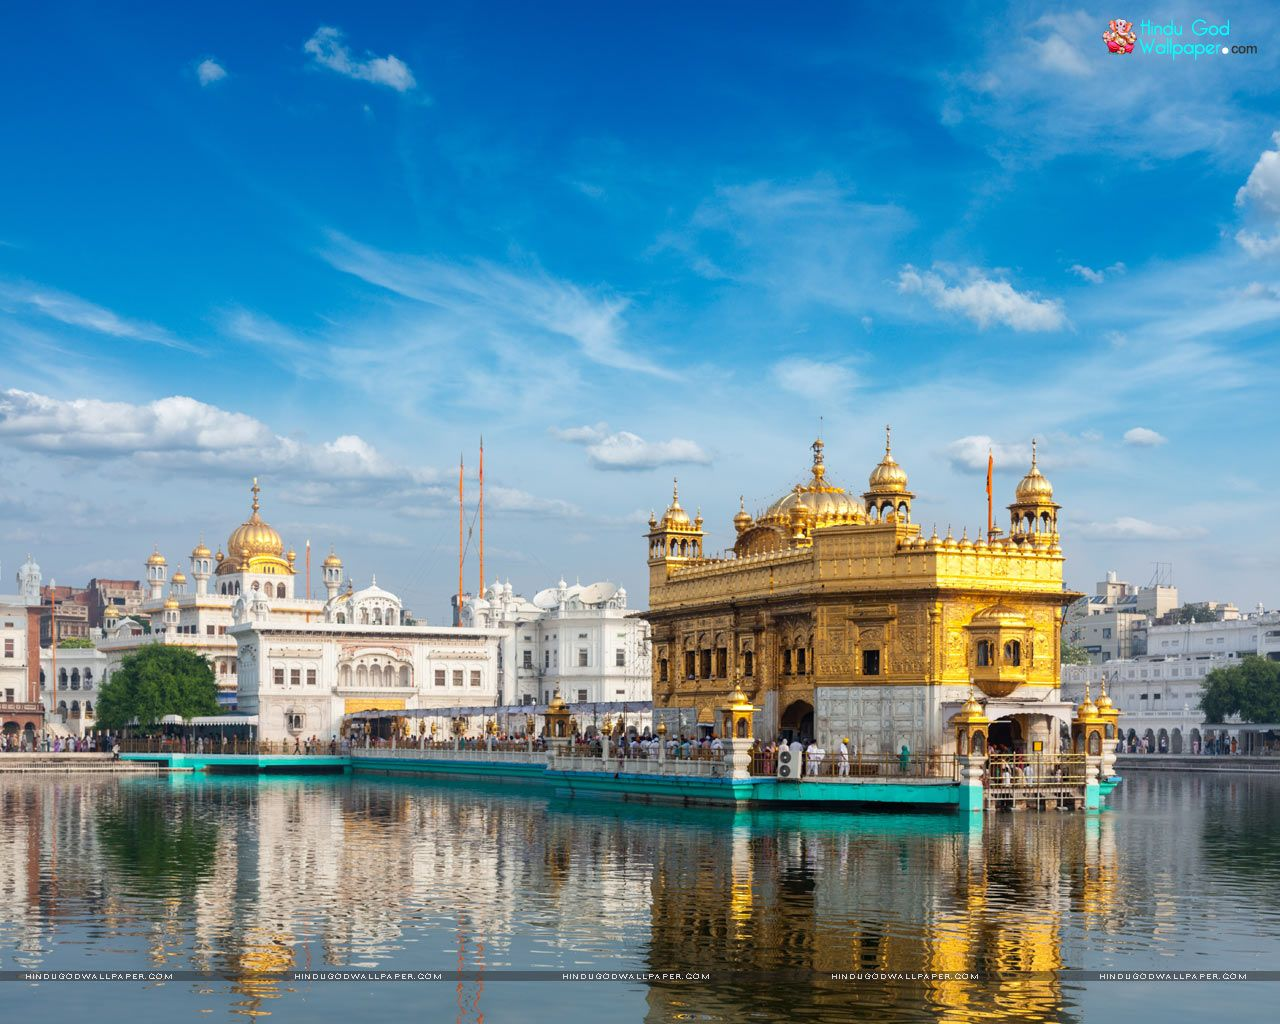 Golden temple wallpaper for desktop download golden - Golden temple images hd download ...